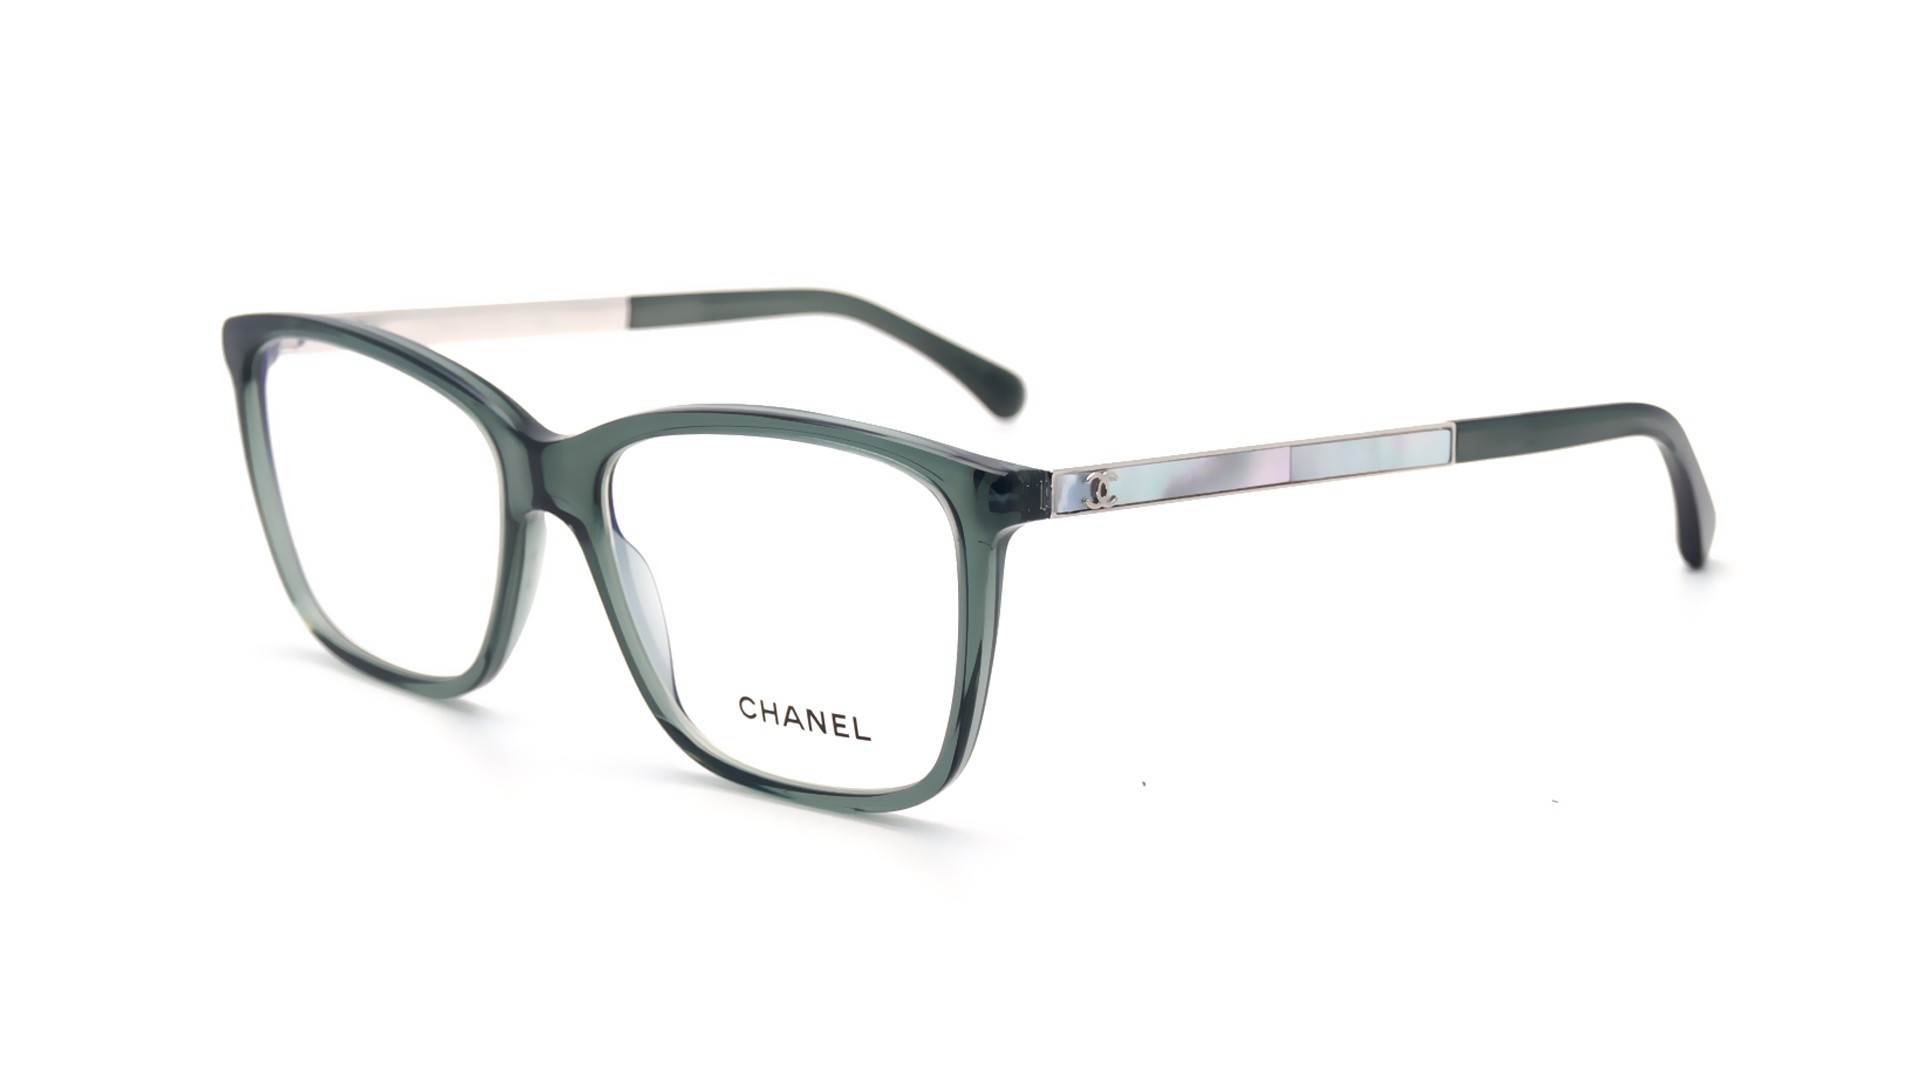 Chanel Eyeglass Frames With Pearls : Chanel Perle Green CH3331H 1546 54-16 Visiofactory